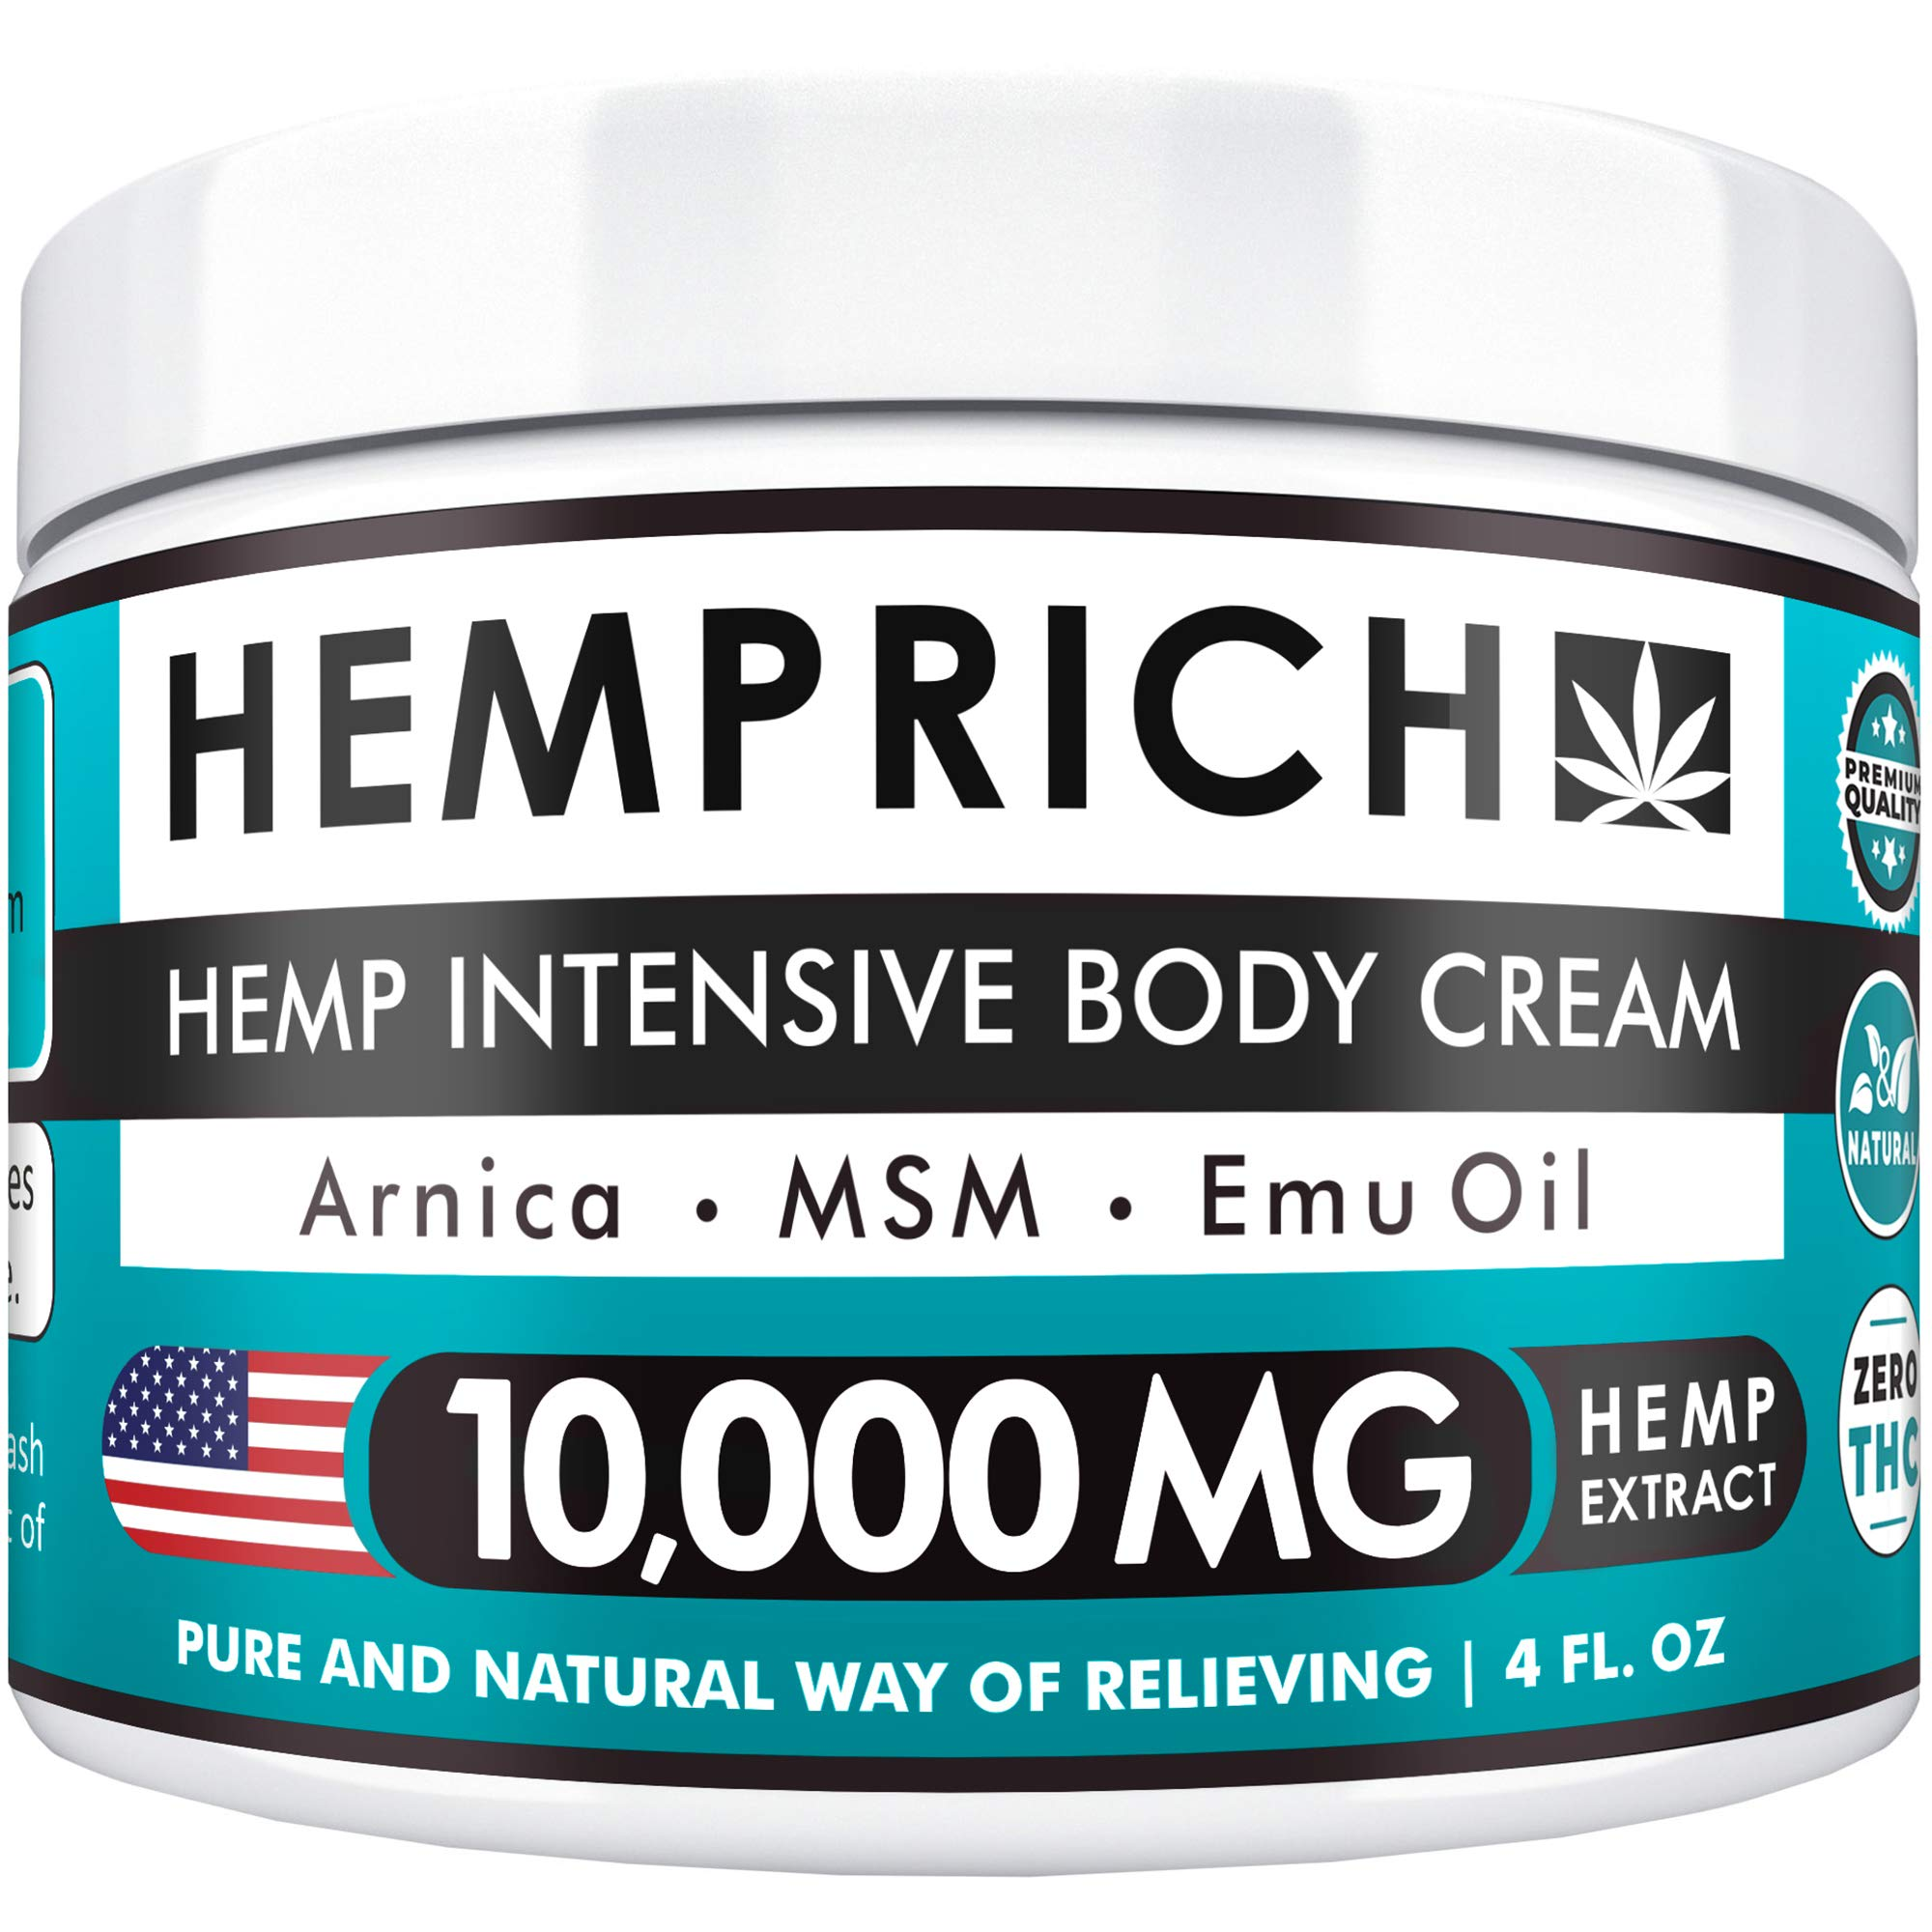 Hemp Cream 10,000mg | 4oz - Made in USA - Back, Neck, Knee Pain Relief - Natural Hemp Oil Cream - Anti Inflammatory - Fast Sore Muscle & Joint Relief - Arnica, MSM, EMU Oil & Glucosamine - Non-GMO by Hemprich